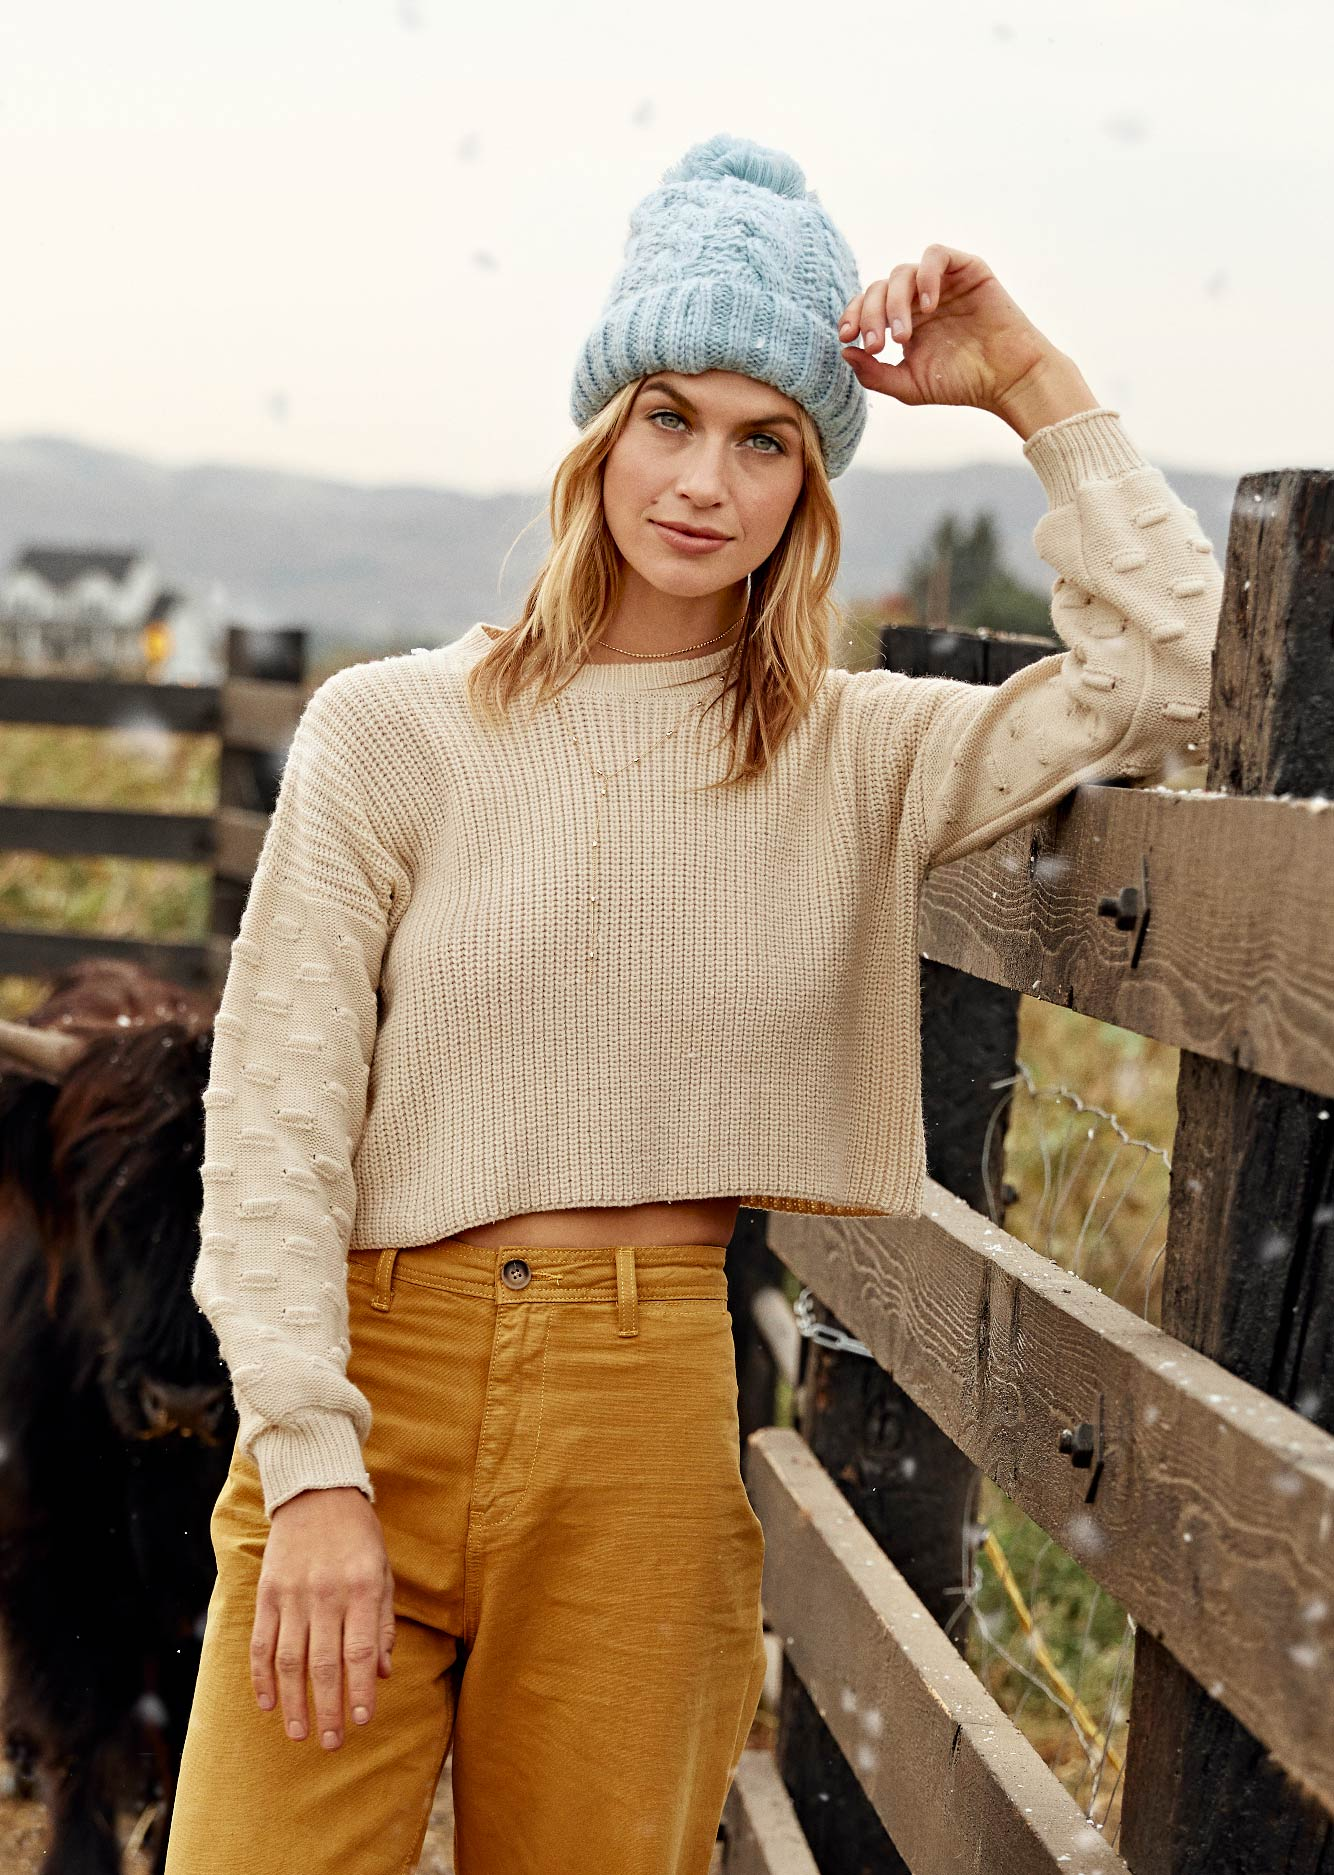 Picture of a women wearing a blue beanie, cream sweater and yellow jeans.